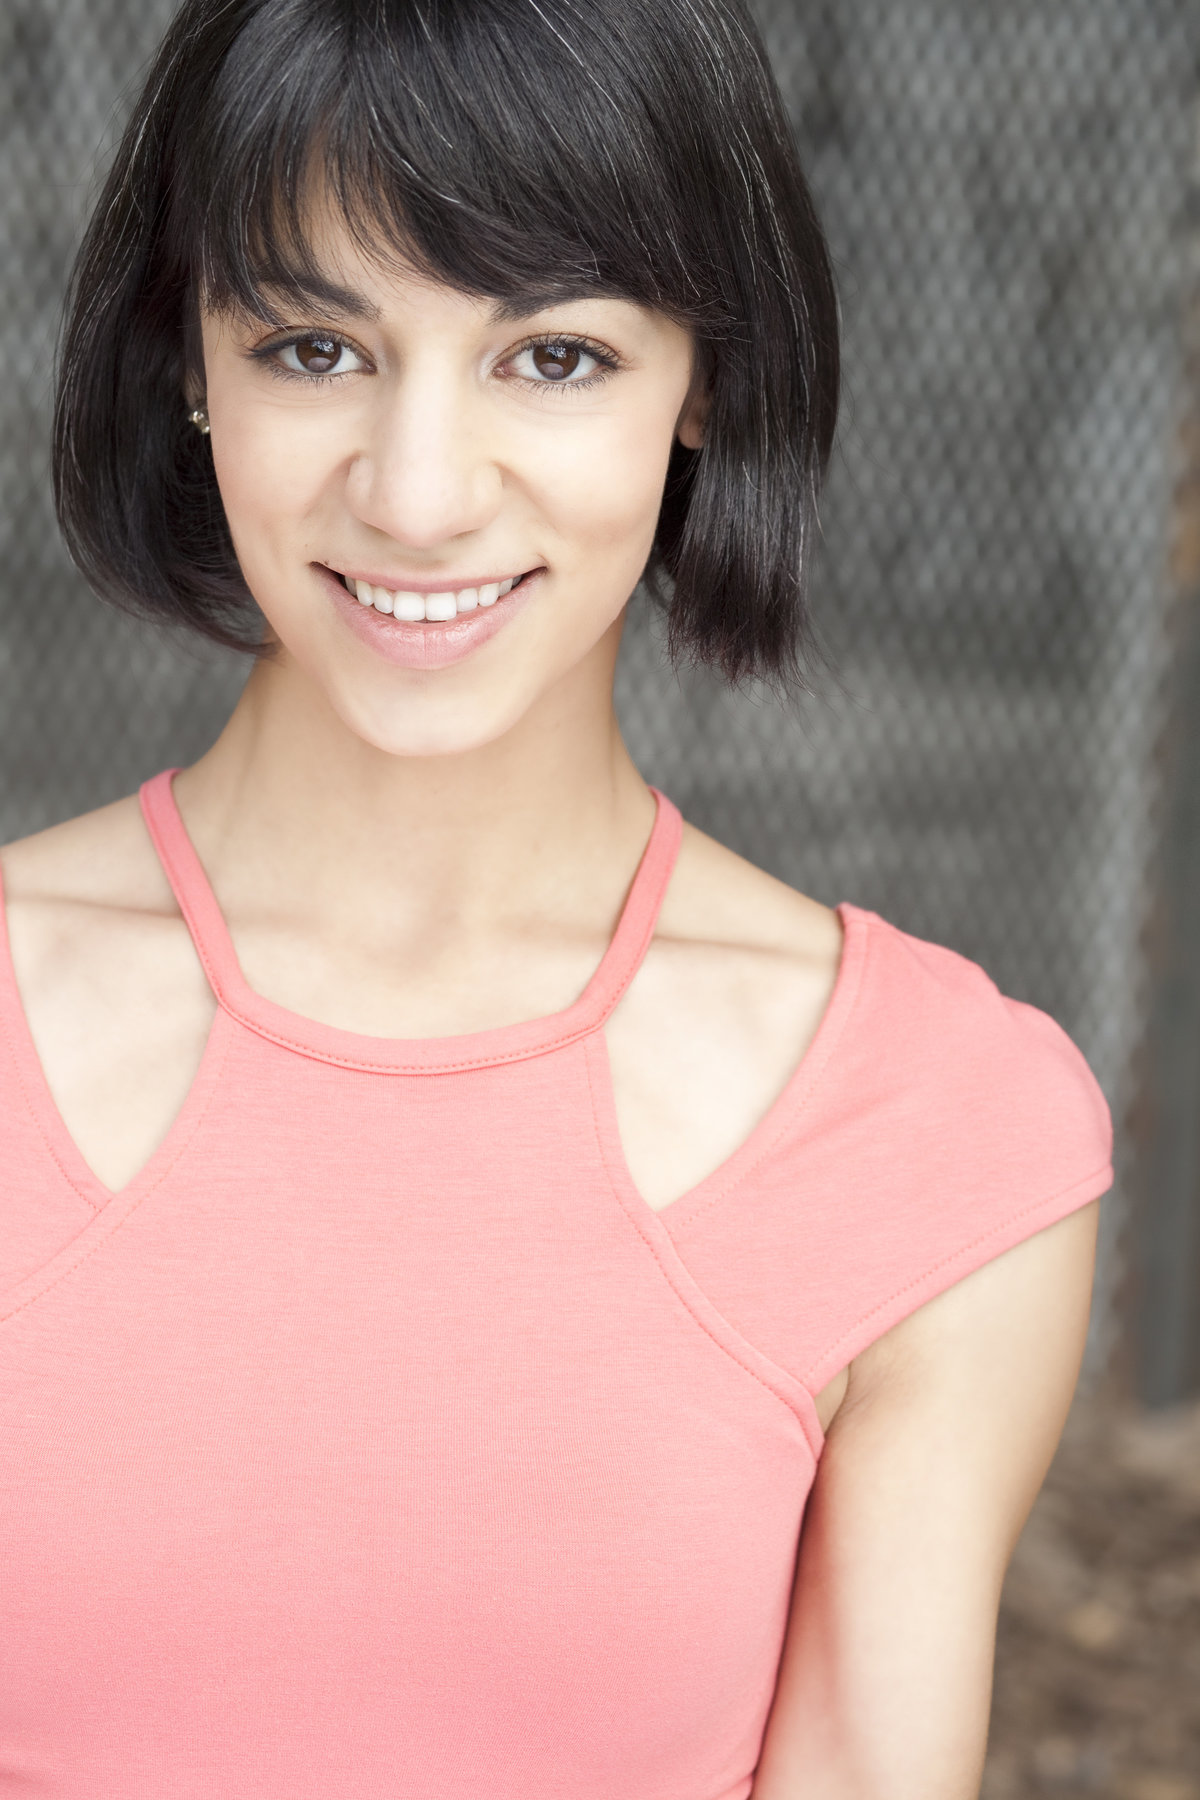 NYC Dancer Headshot